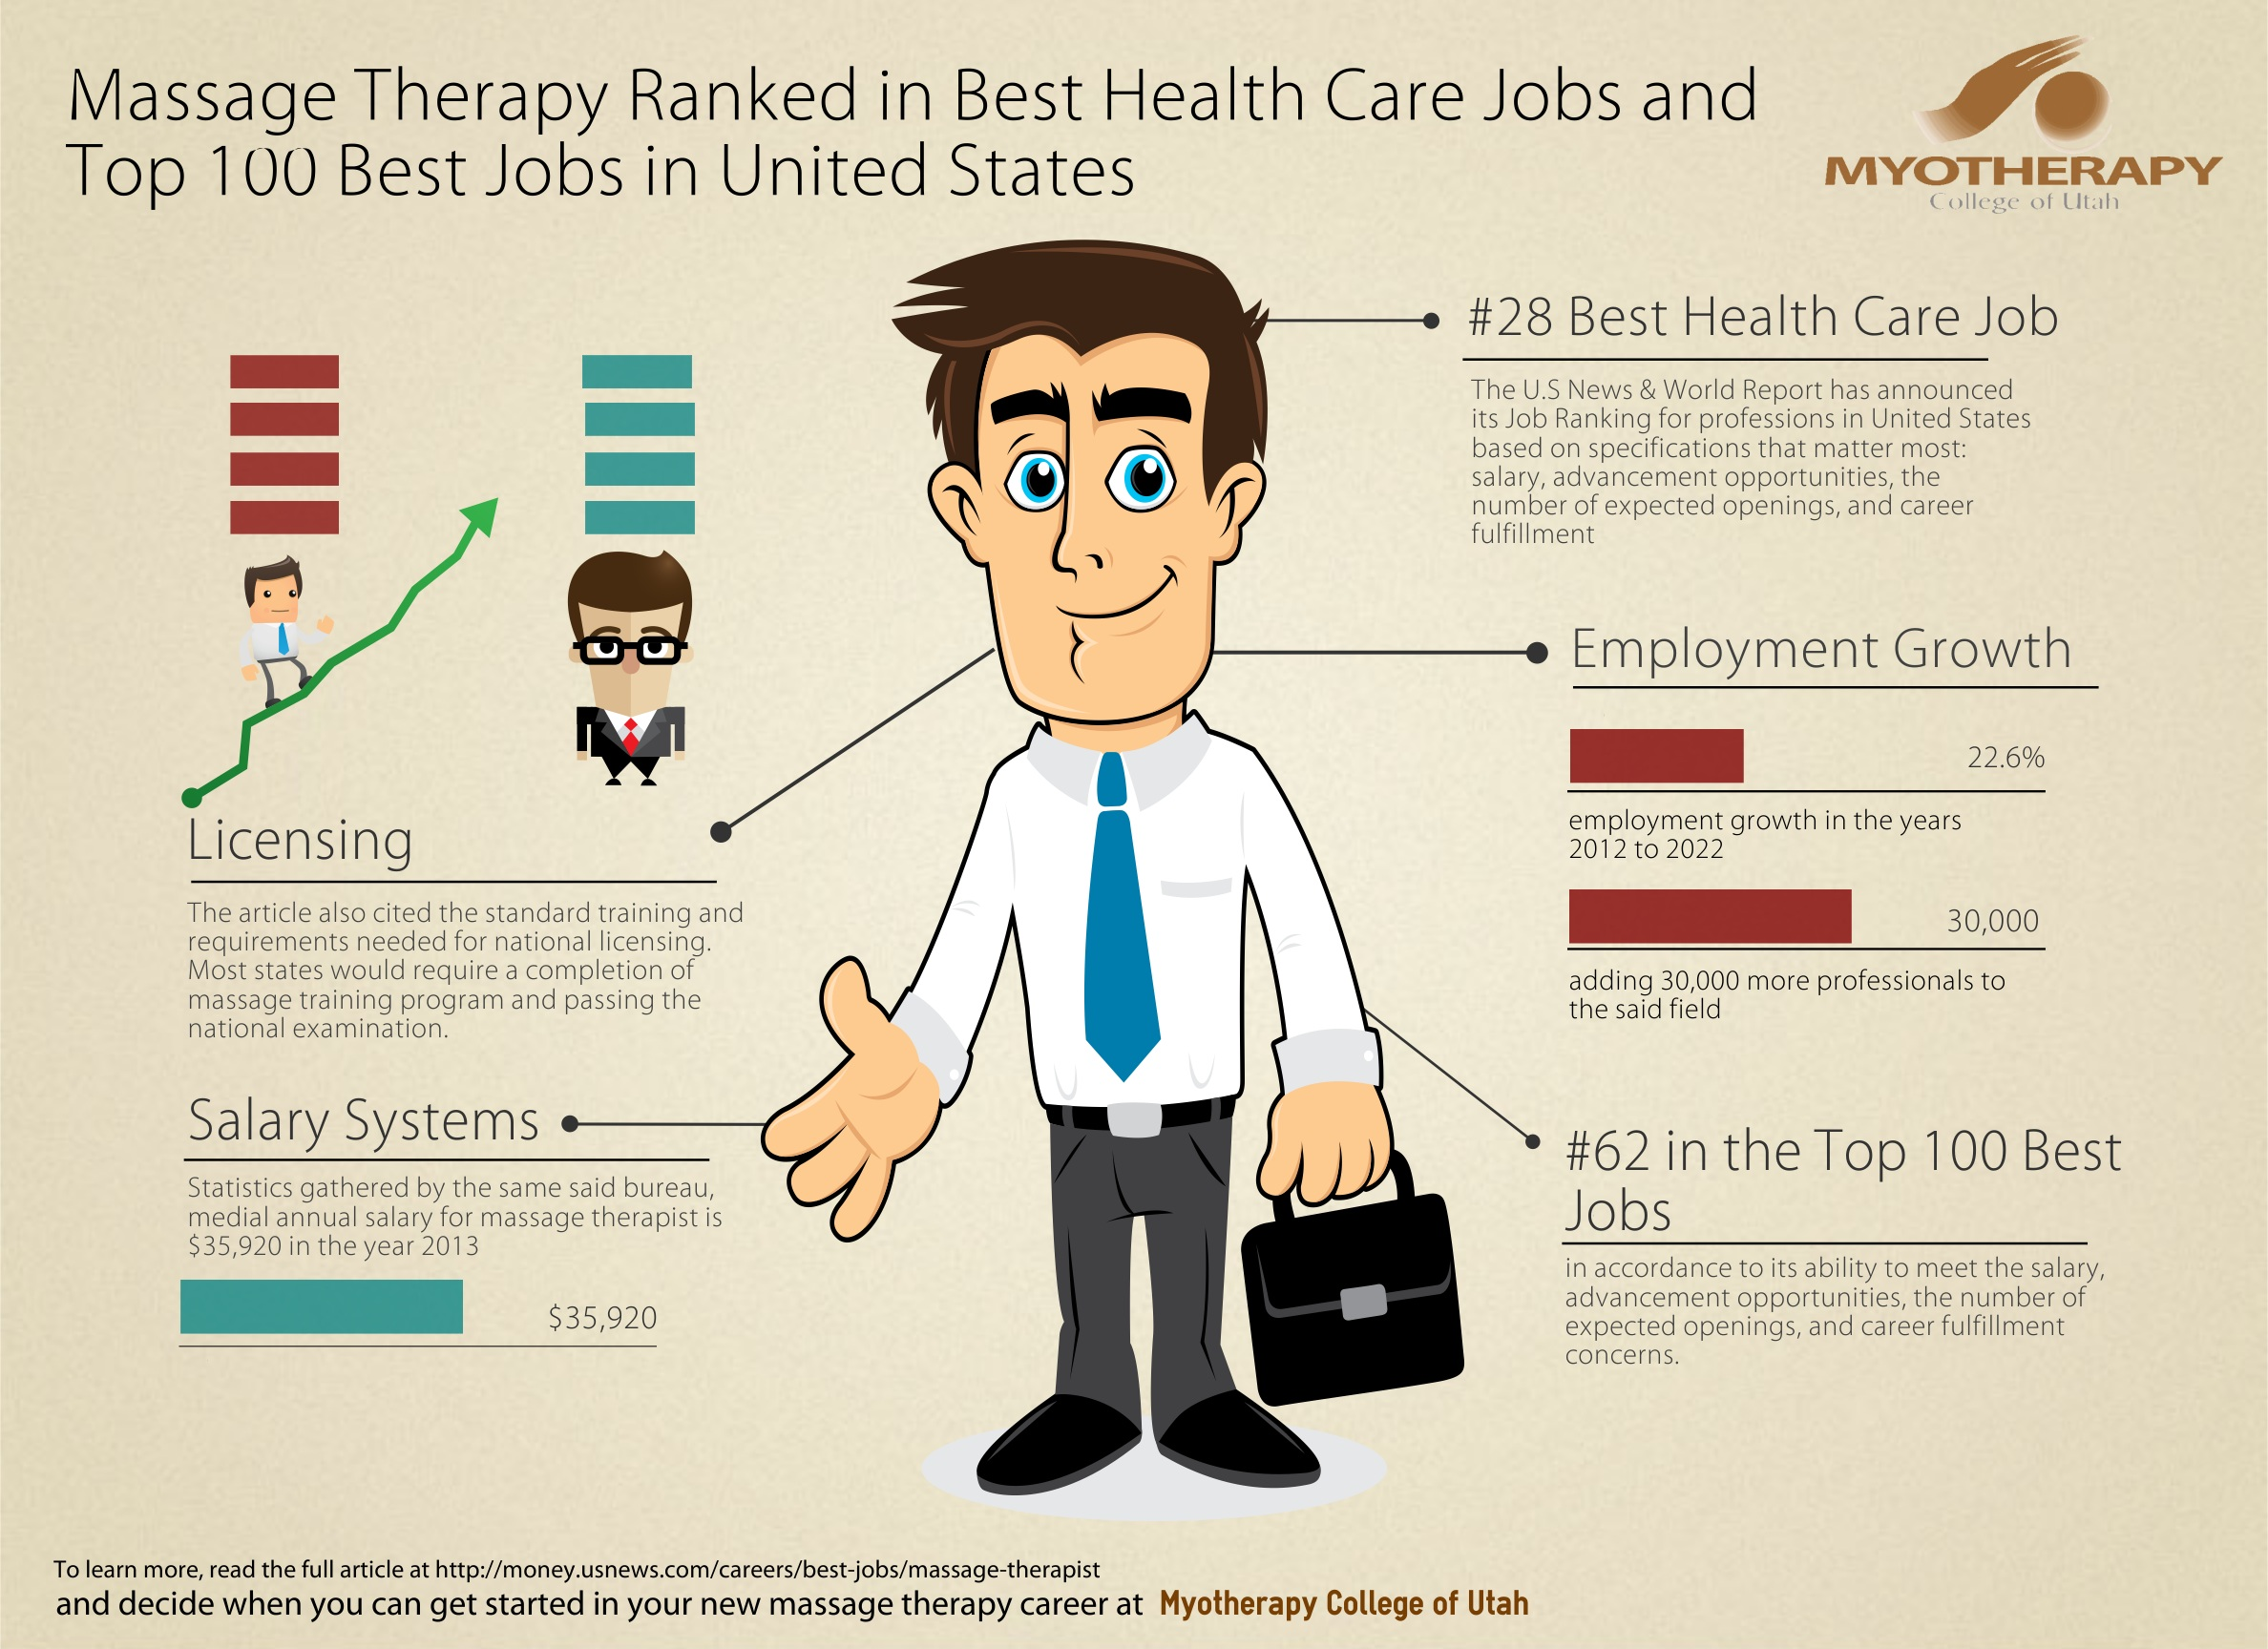 Mage Therapy Ranked In Best Health Care Jobs And Top 100 United States Visual Ly